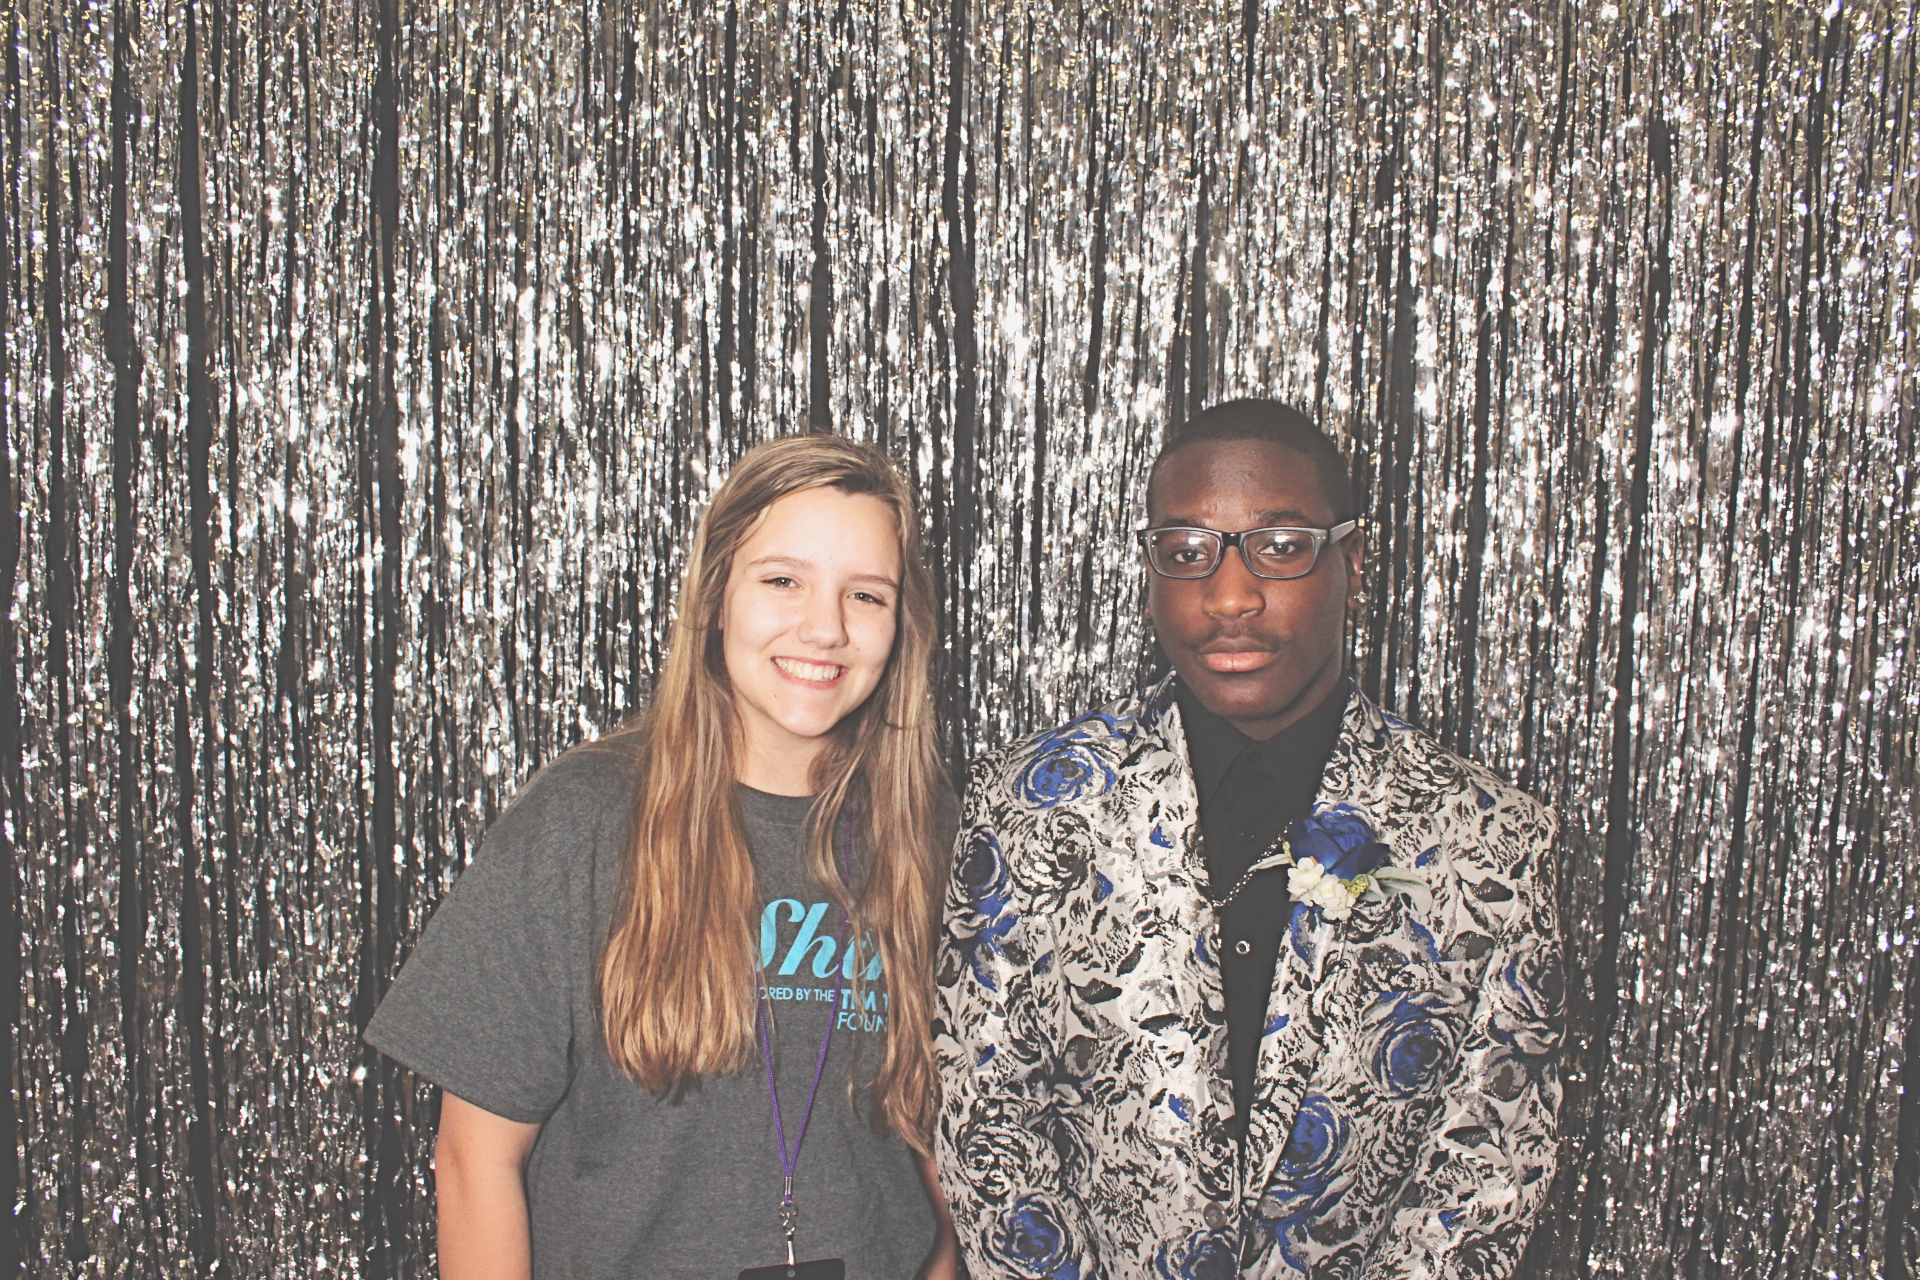 2-8-19 Atlanta Southcrest Church Photo Booth - Night to Shine Coweta 2019 - Robot Booth170.jpg